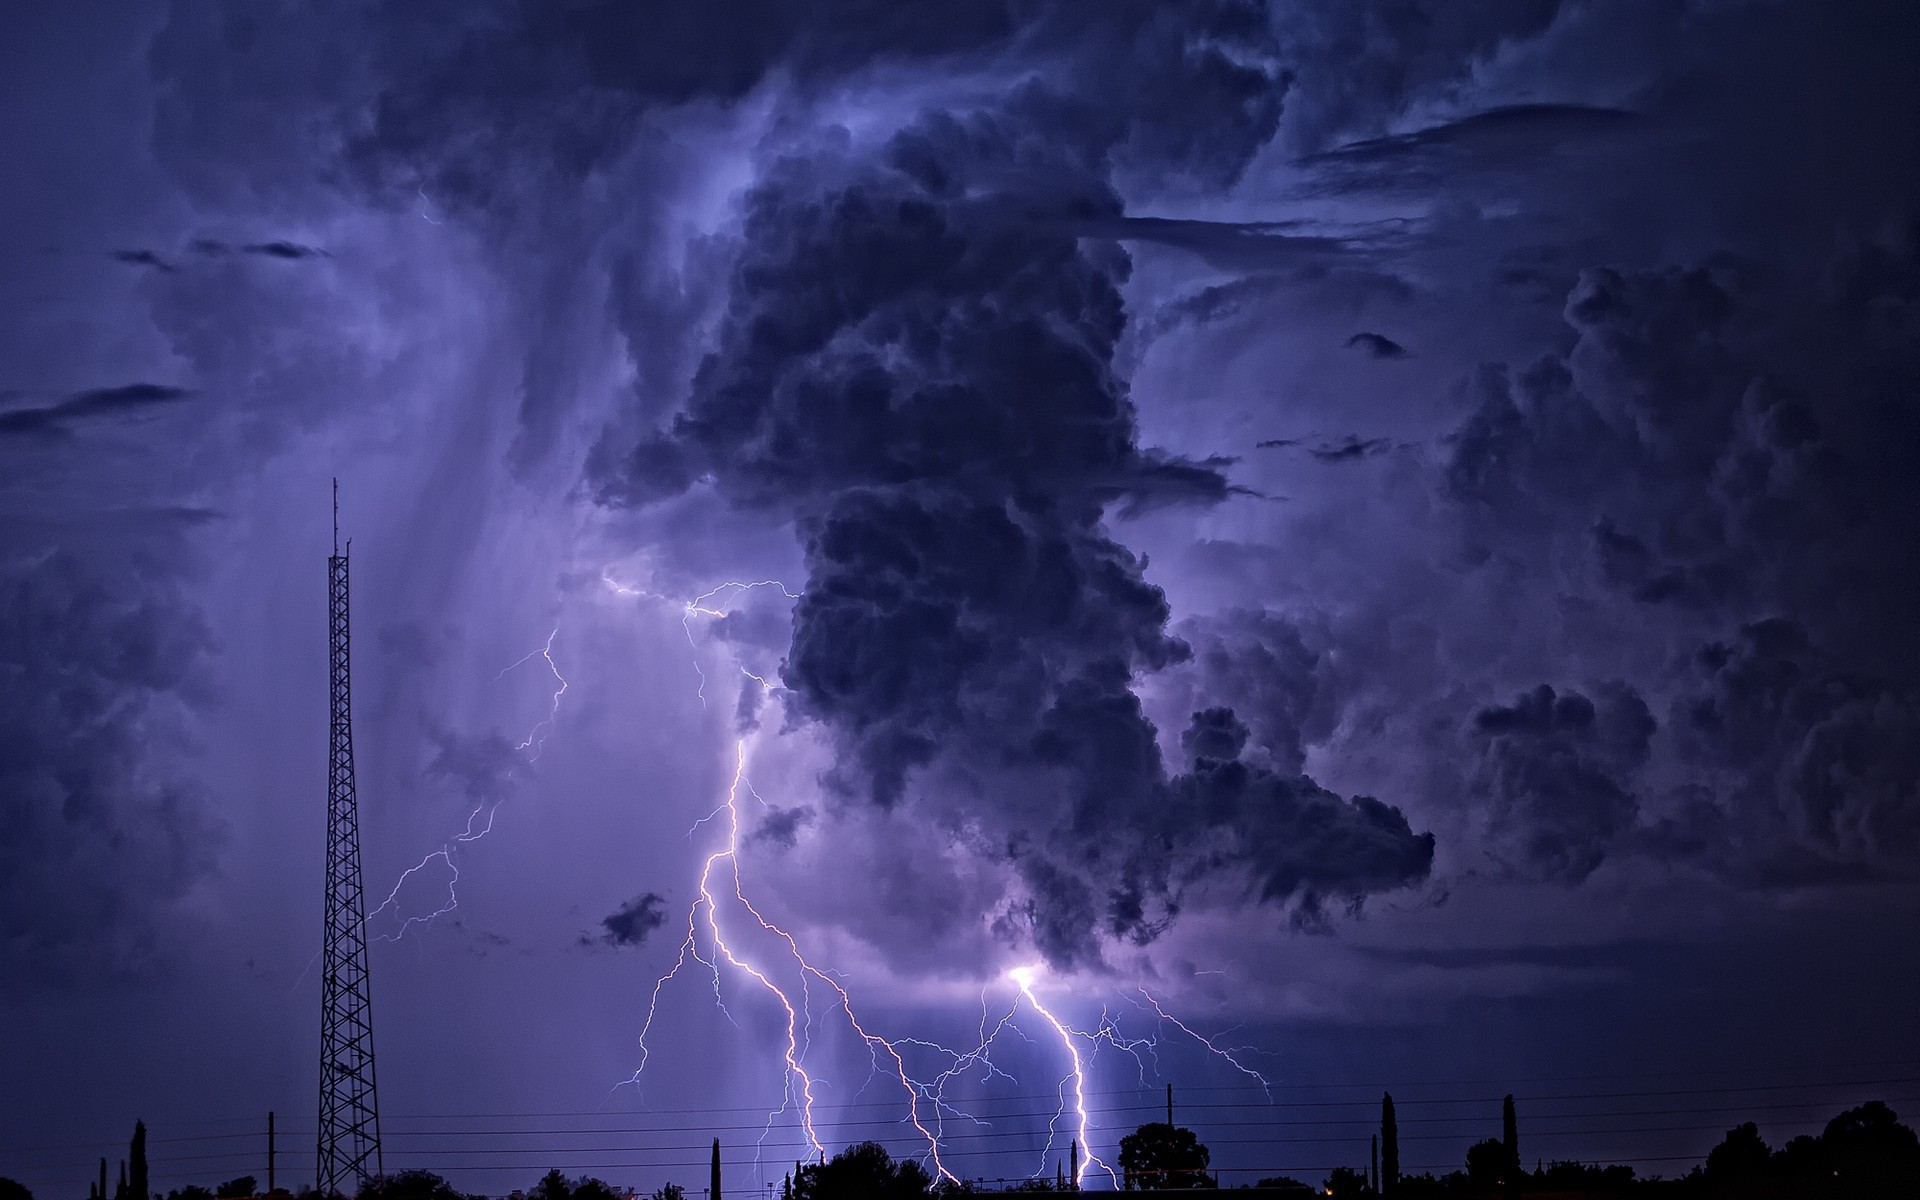 1920x1080 Lightning Storm Wallpapers Wallpaper 1920A 1080